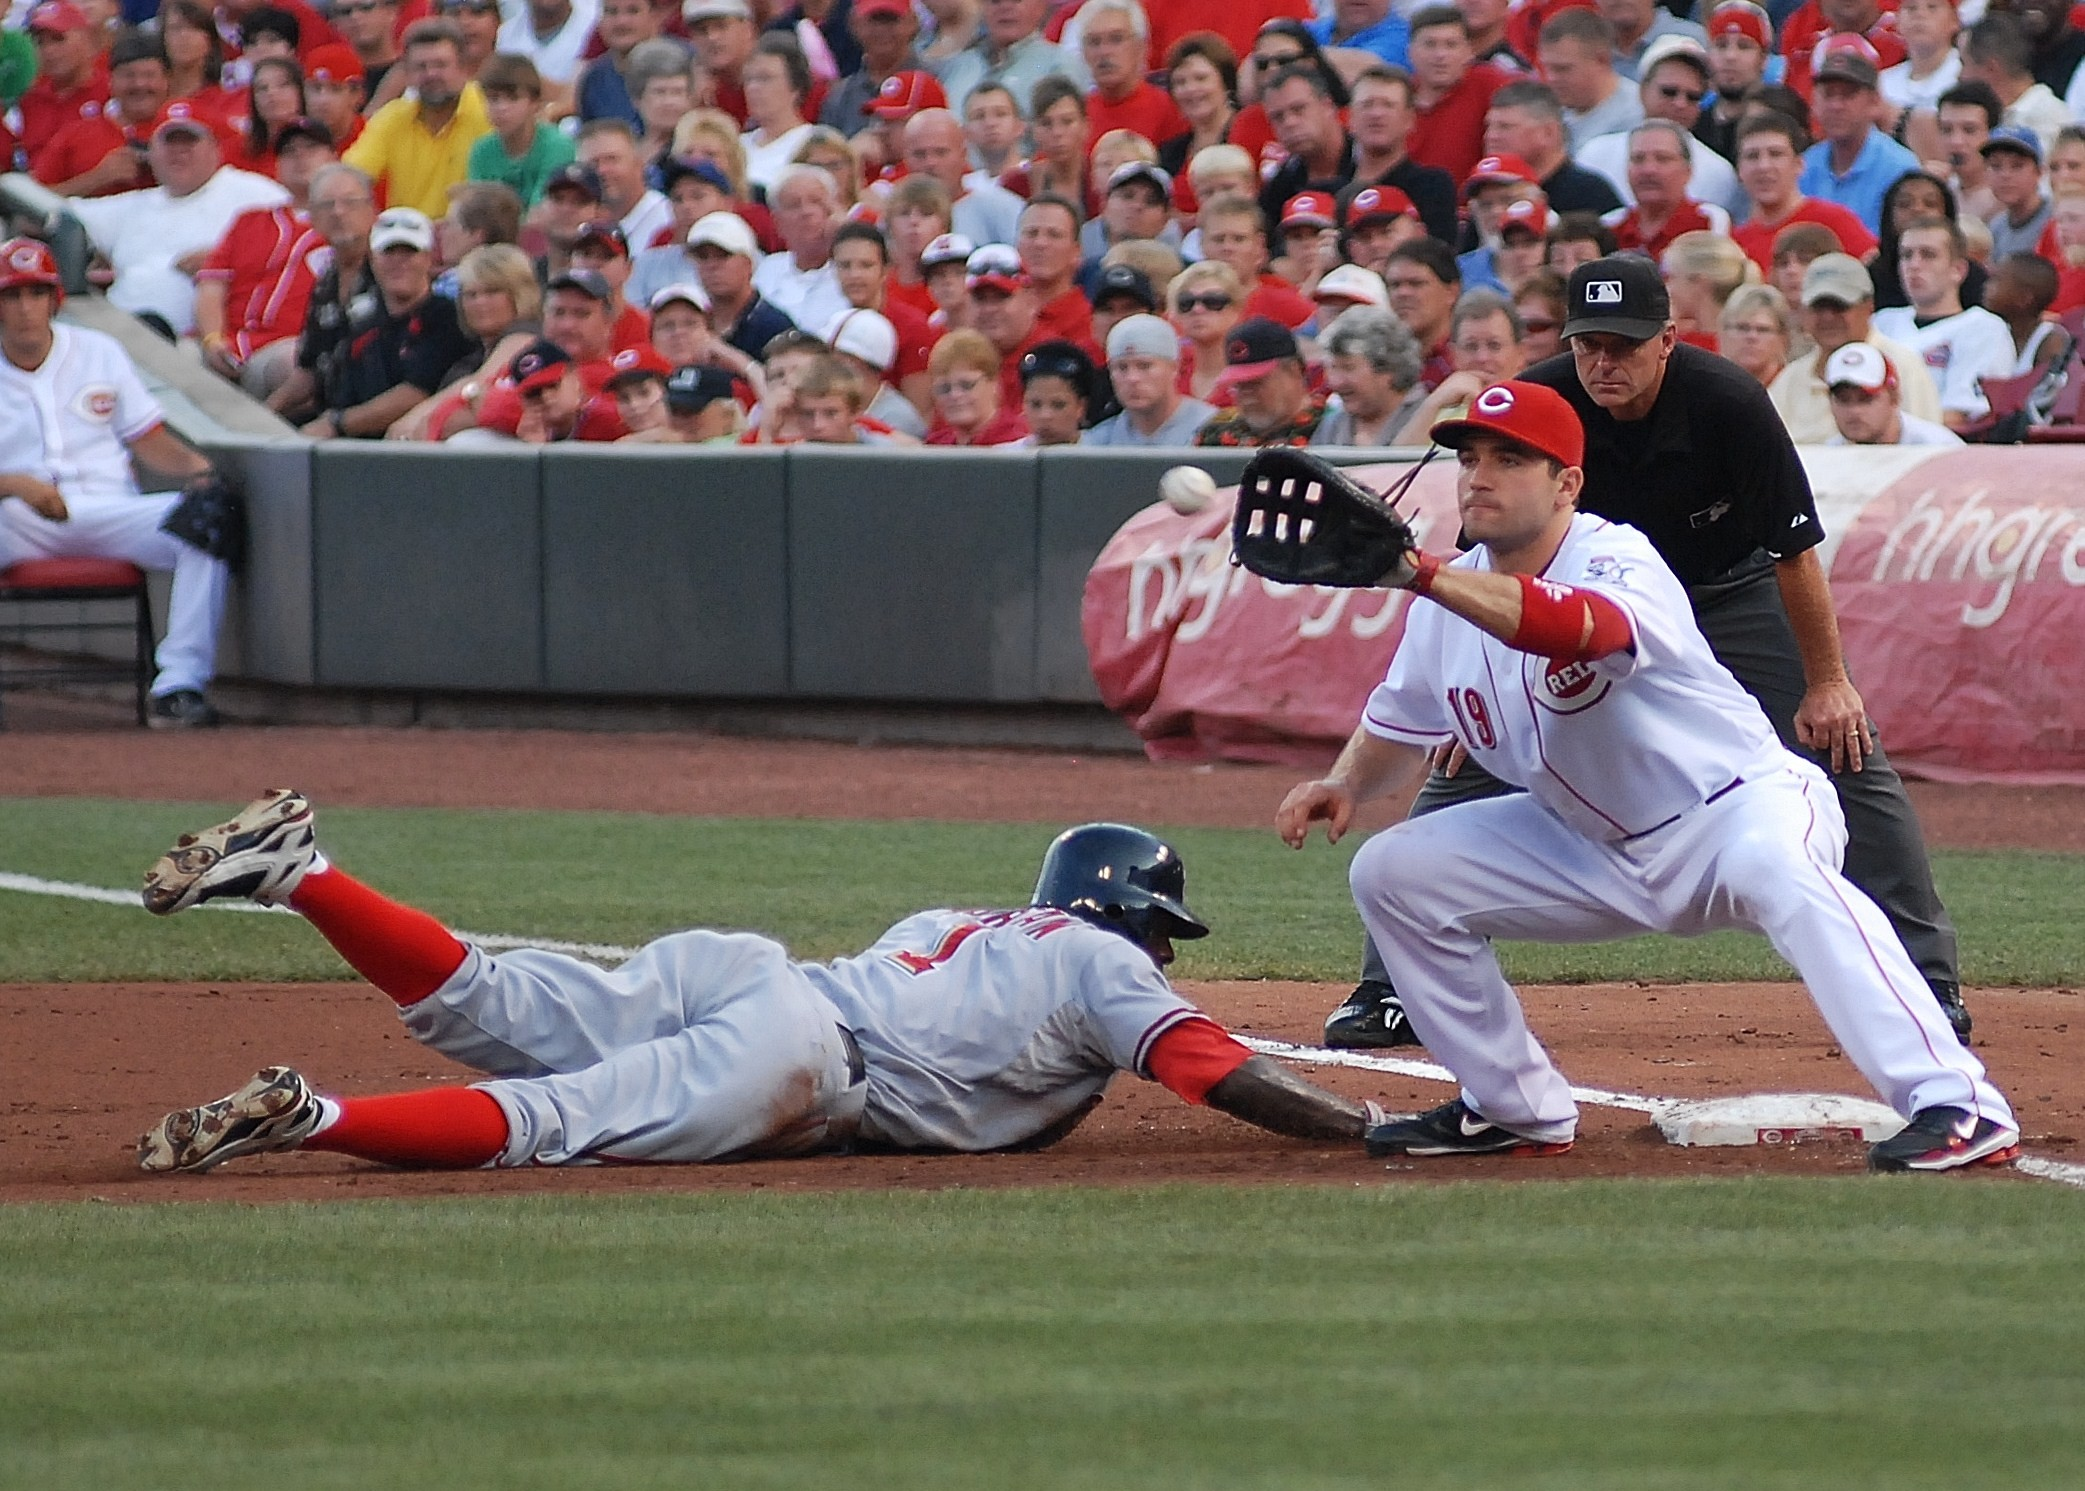 Joey Votto of the Cincinnati Reds by Sports Photographer Vincent Rush